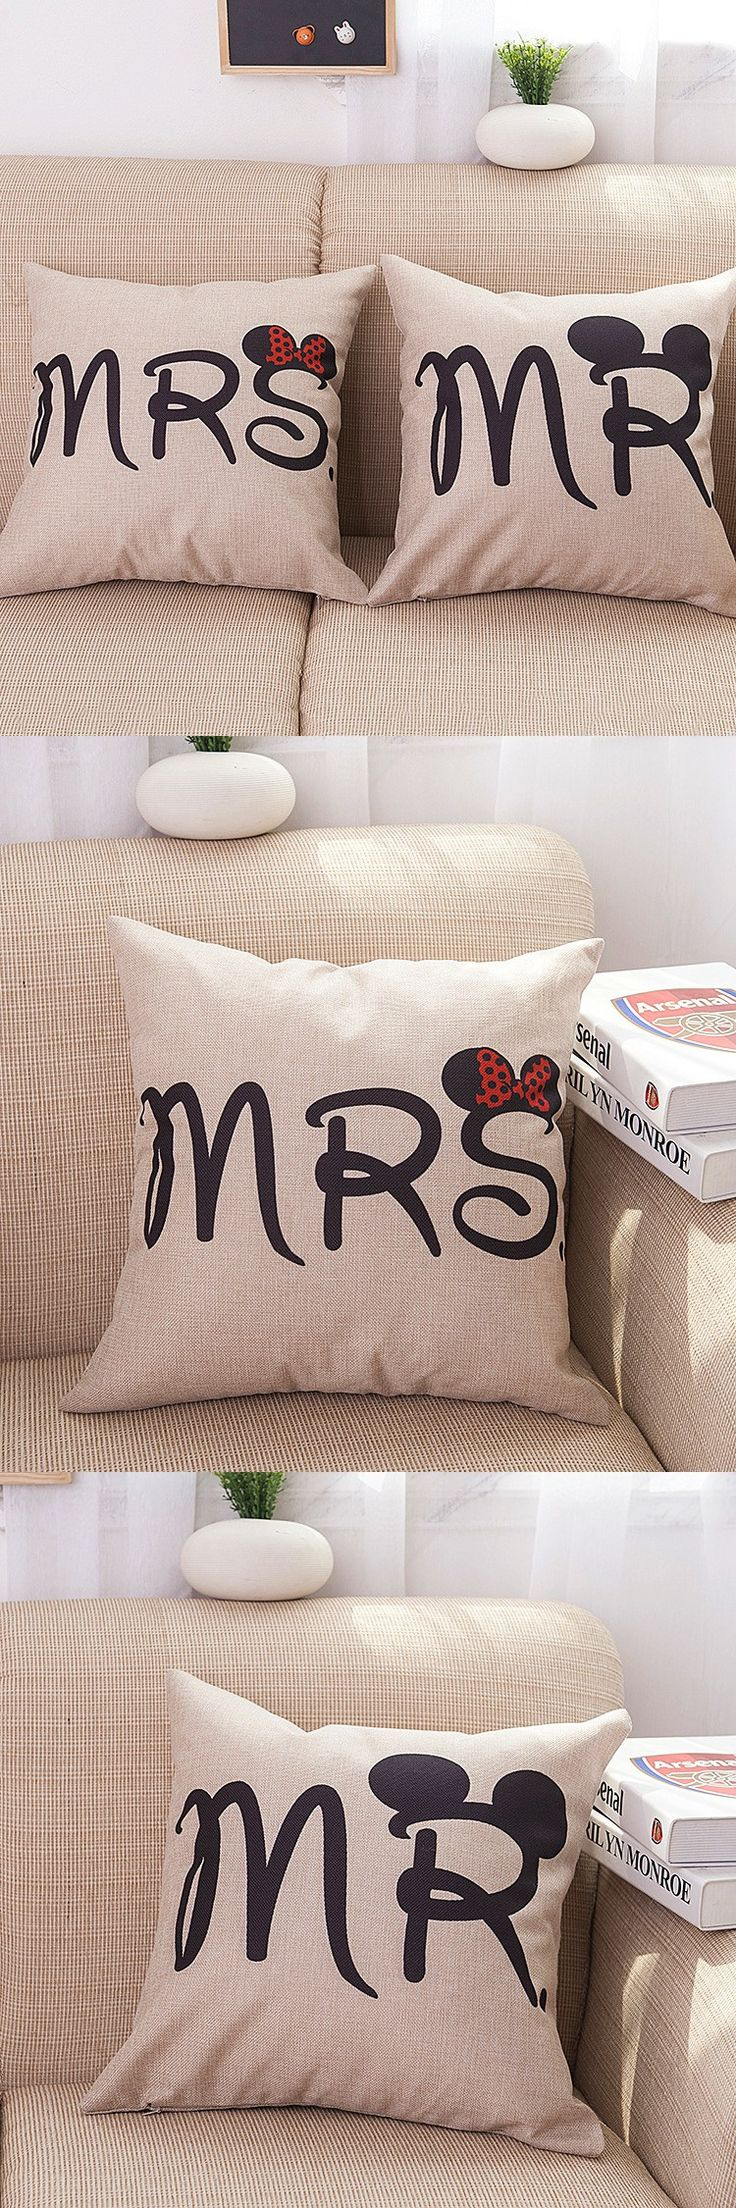 MRS and MR Cotton Linen  Body Pillow Cover Anime Pillowcase Lovers Hugging Pillow Cases Soft Cozy Home Decorative  SD8 $4.9